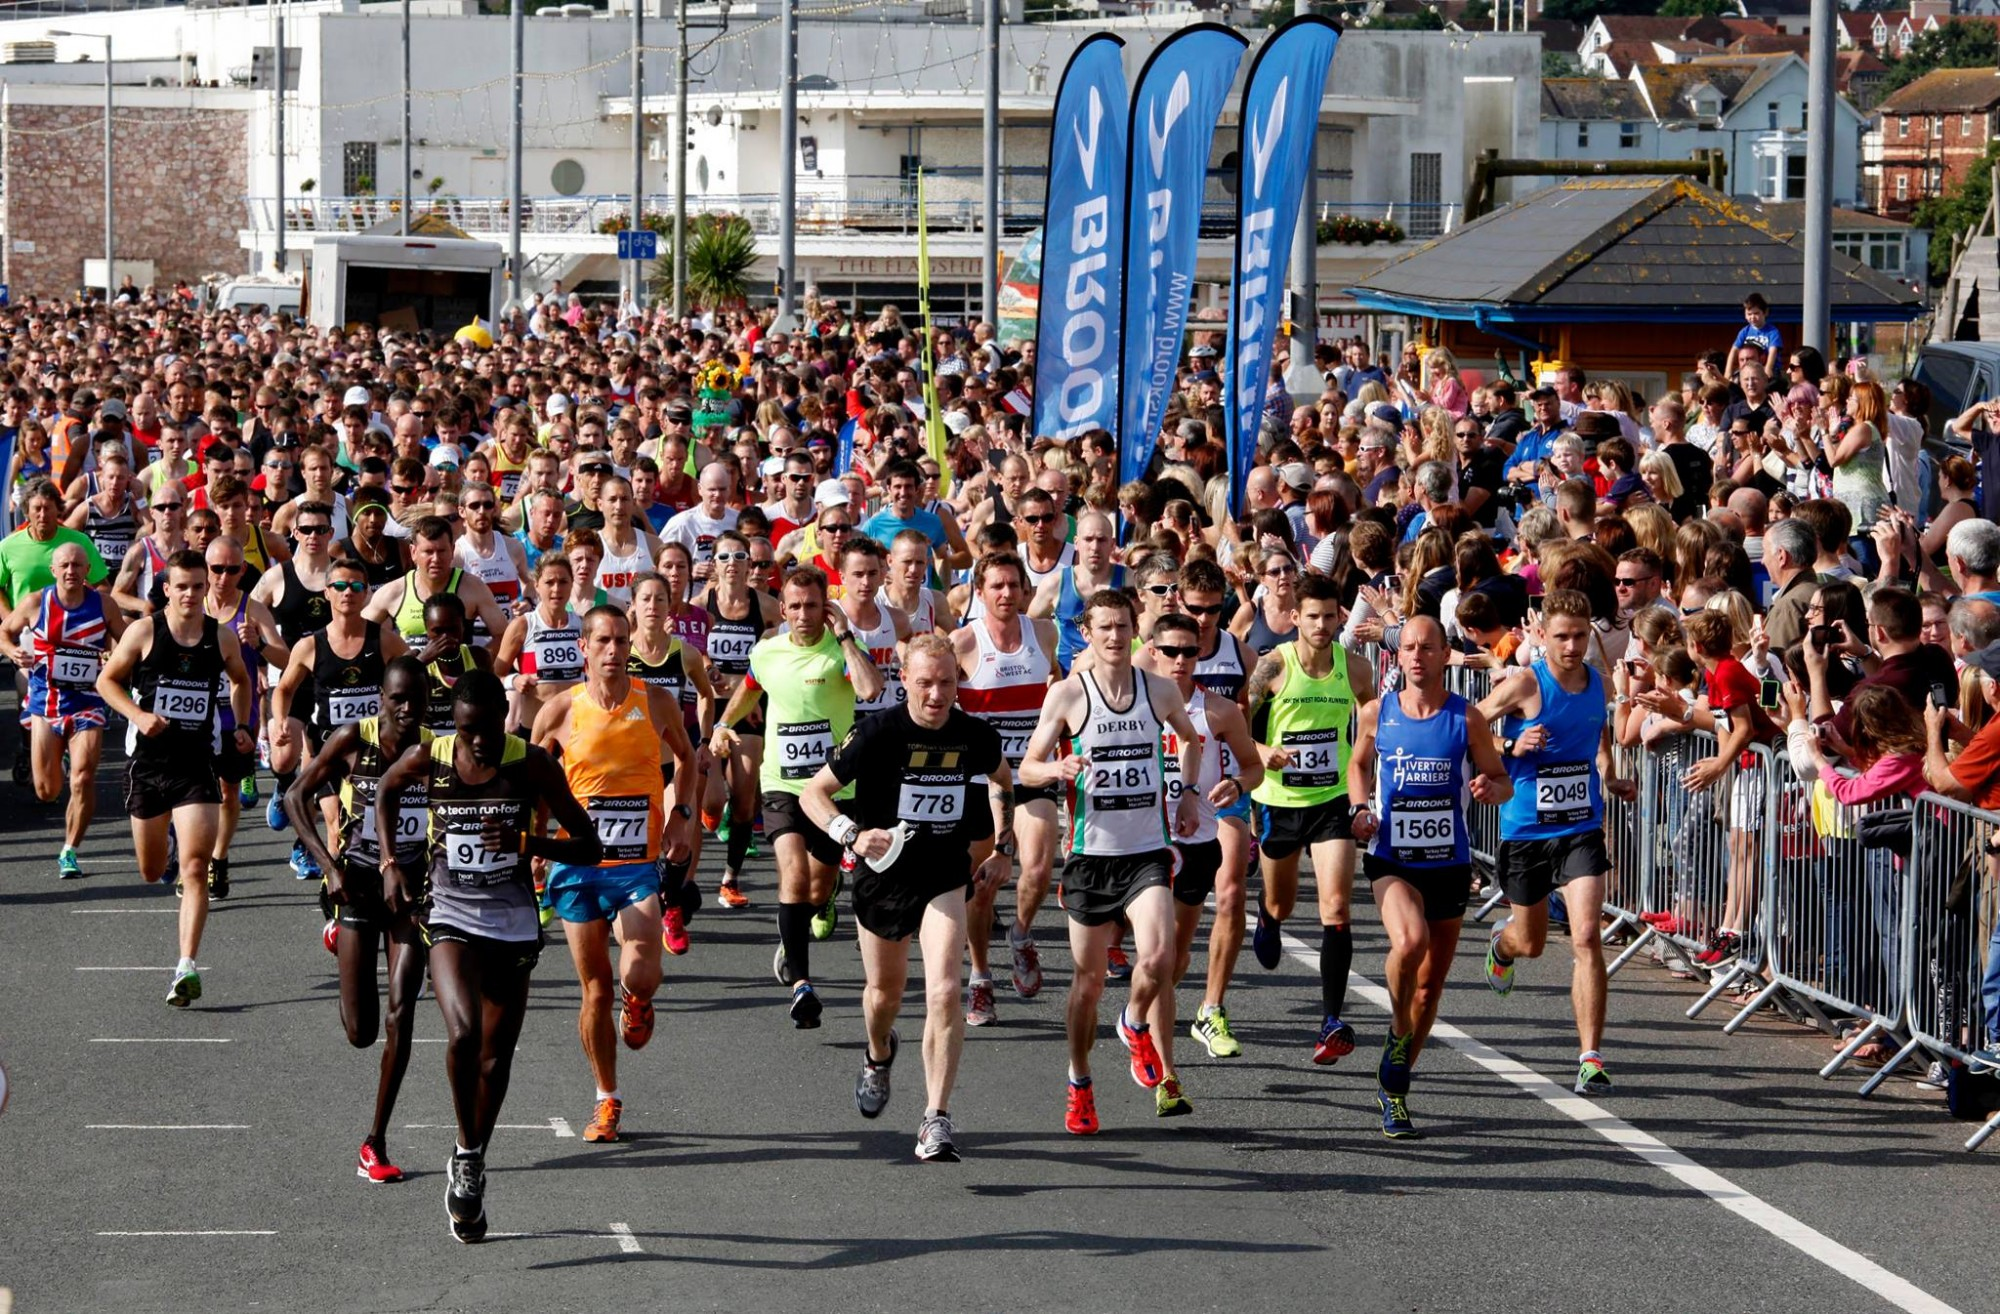 Torbay Half Marathon and 10k places to support our charity